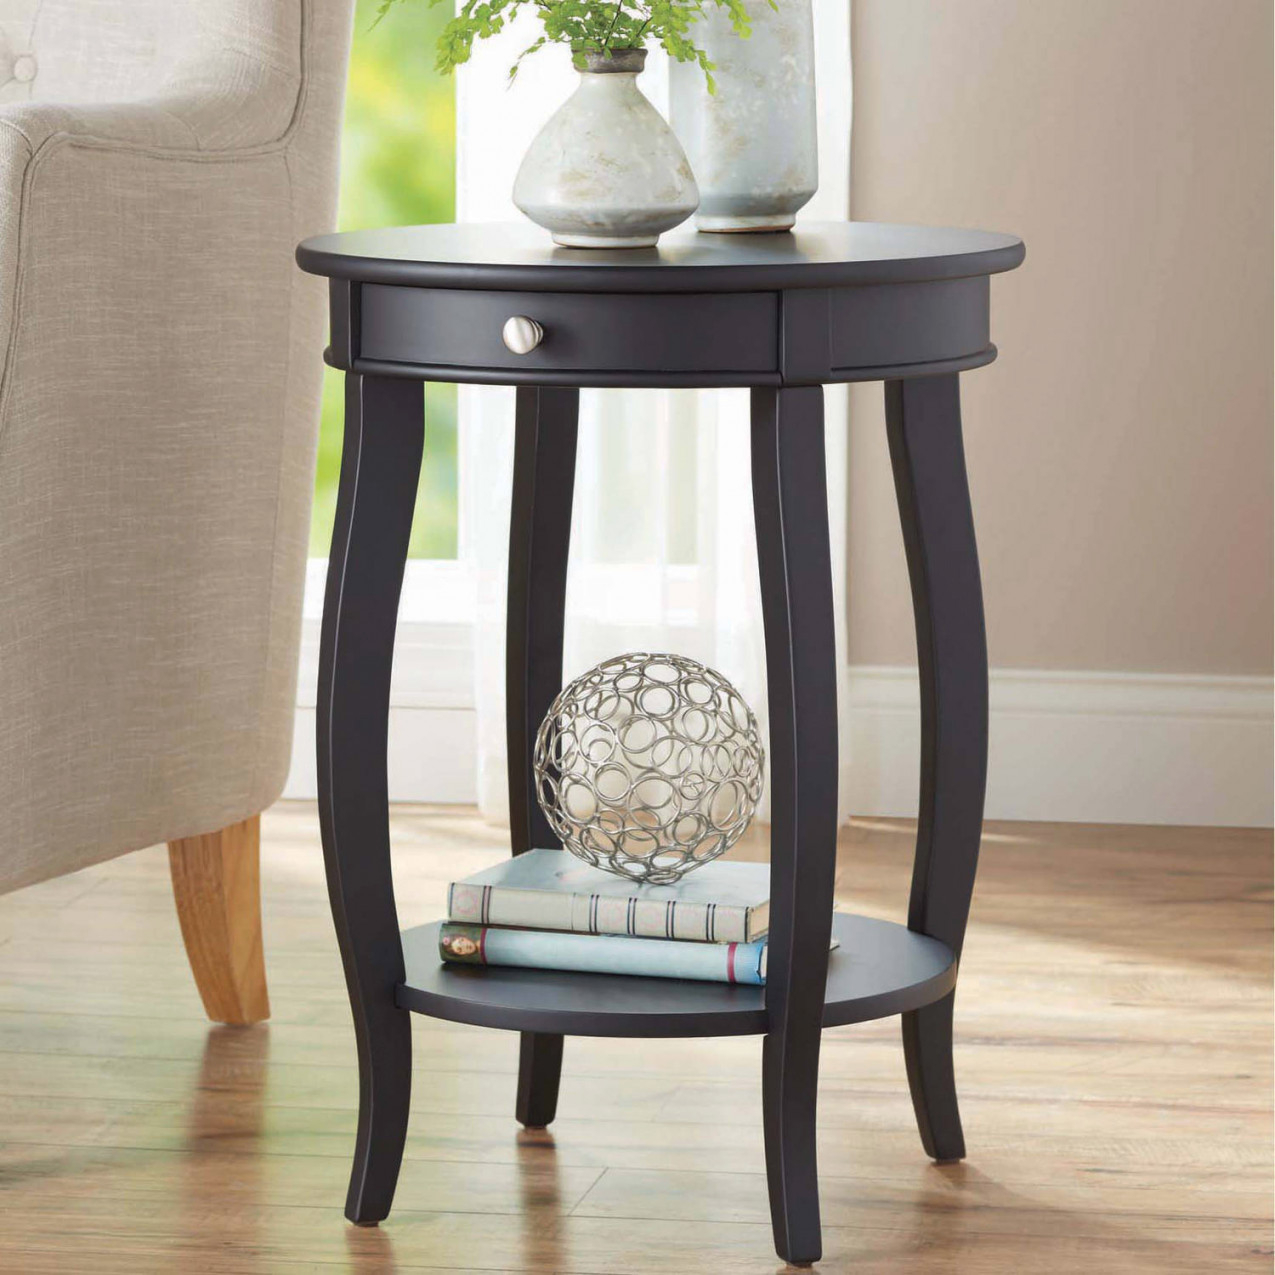 Better Homes & Gardens Round Accent Table With Drawer, Black - Walmart in 9+ Awesome Inspiration For Small End Tables Living Room